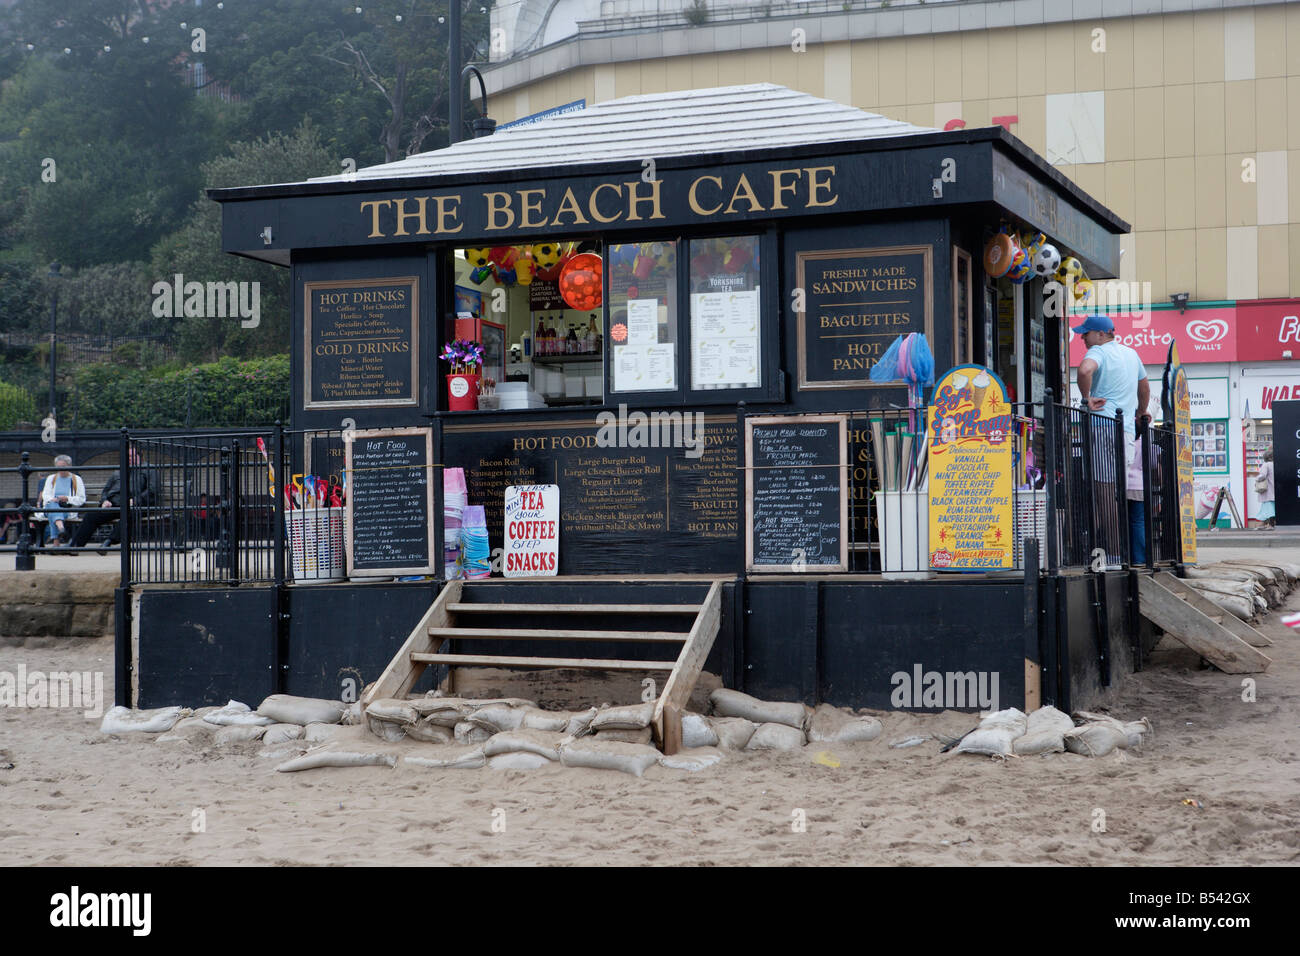 The Beach Cafe Scarborough - Stock Image